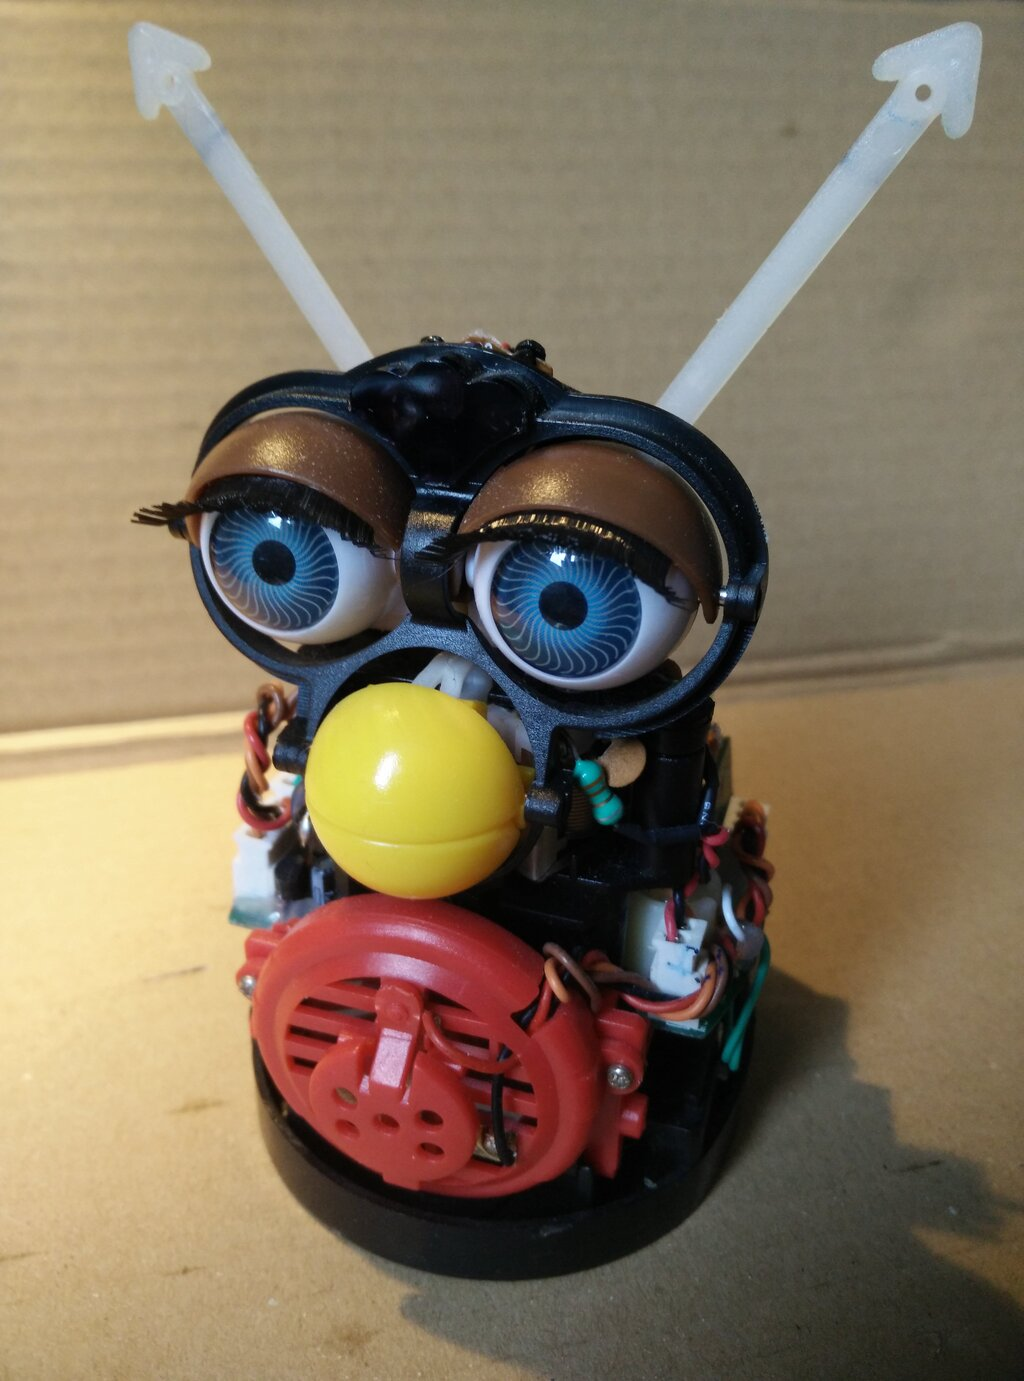 The original Furby with its fur and carapace removed